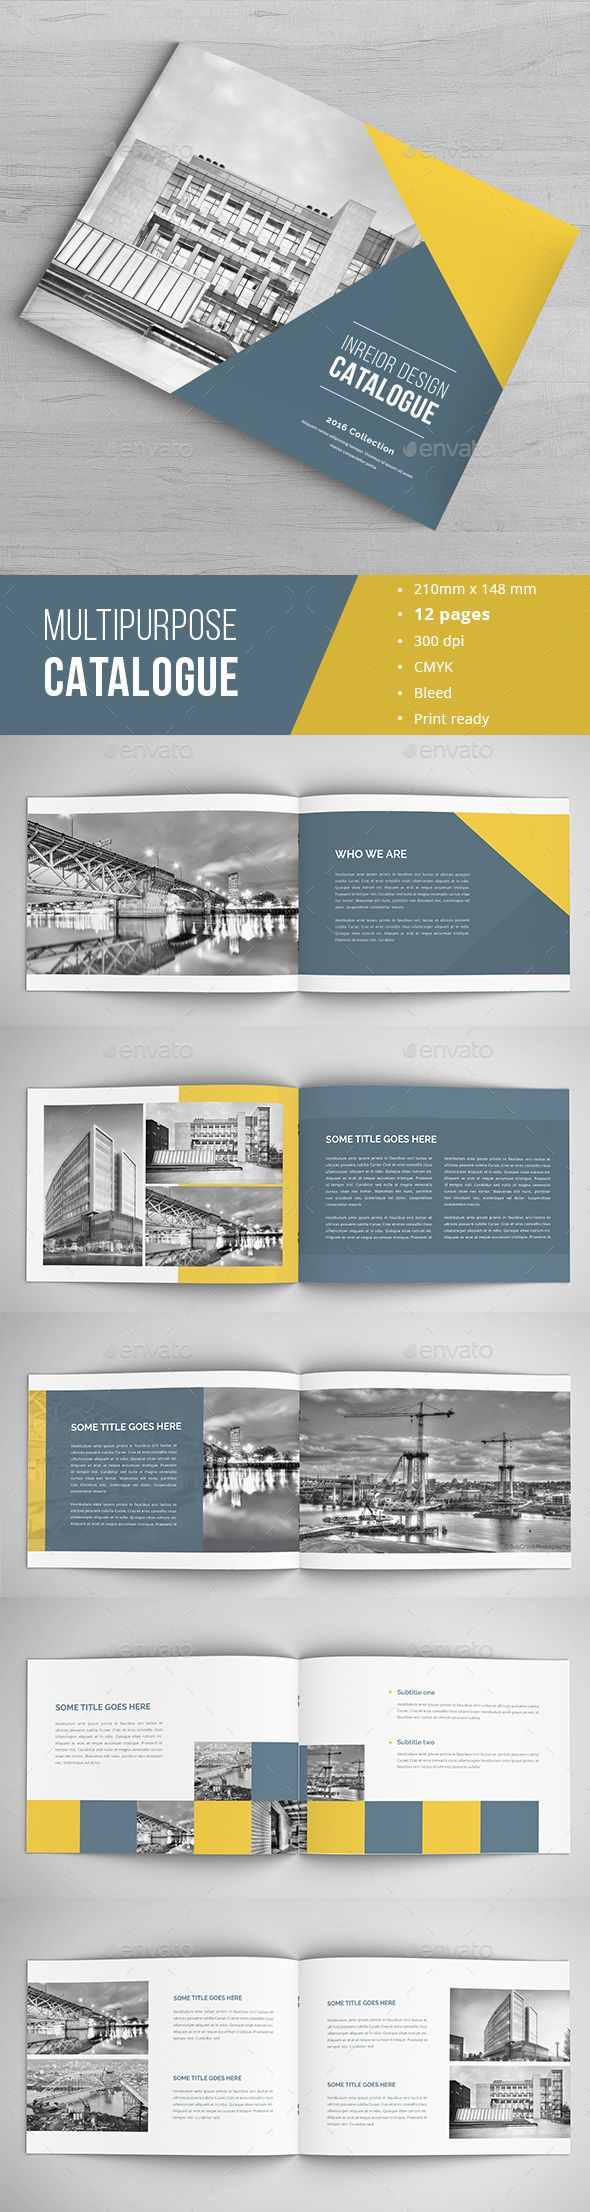 Beautiful 10 Half Hexagon Template Big 10 Minute Resume Square 1099 Misc Form Template 1099 Template Word Old 1st Birthday Invite Templates White1st Job Resume Objective 25  Best Ideas About Brochure Template On Pinterest | Brochure ..